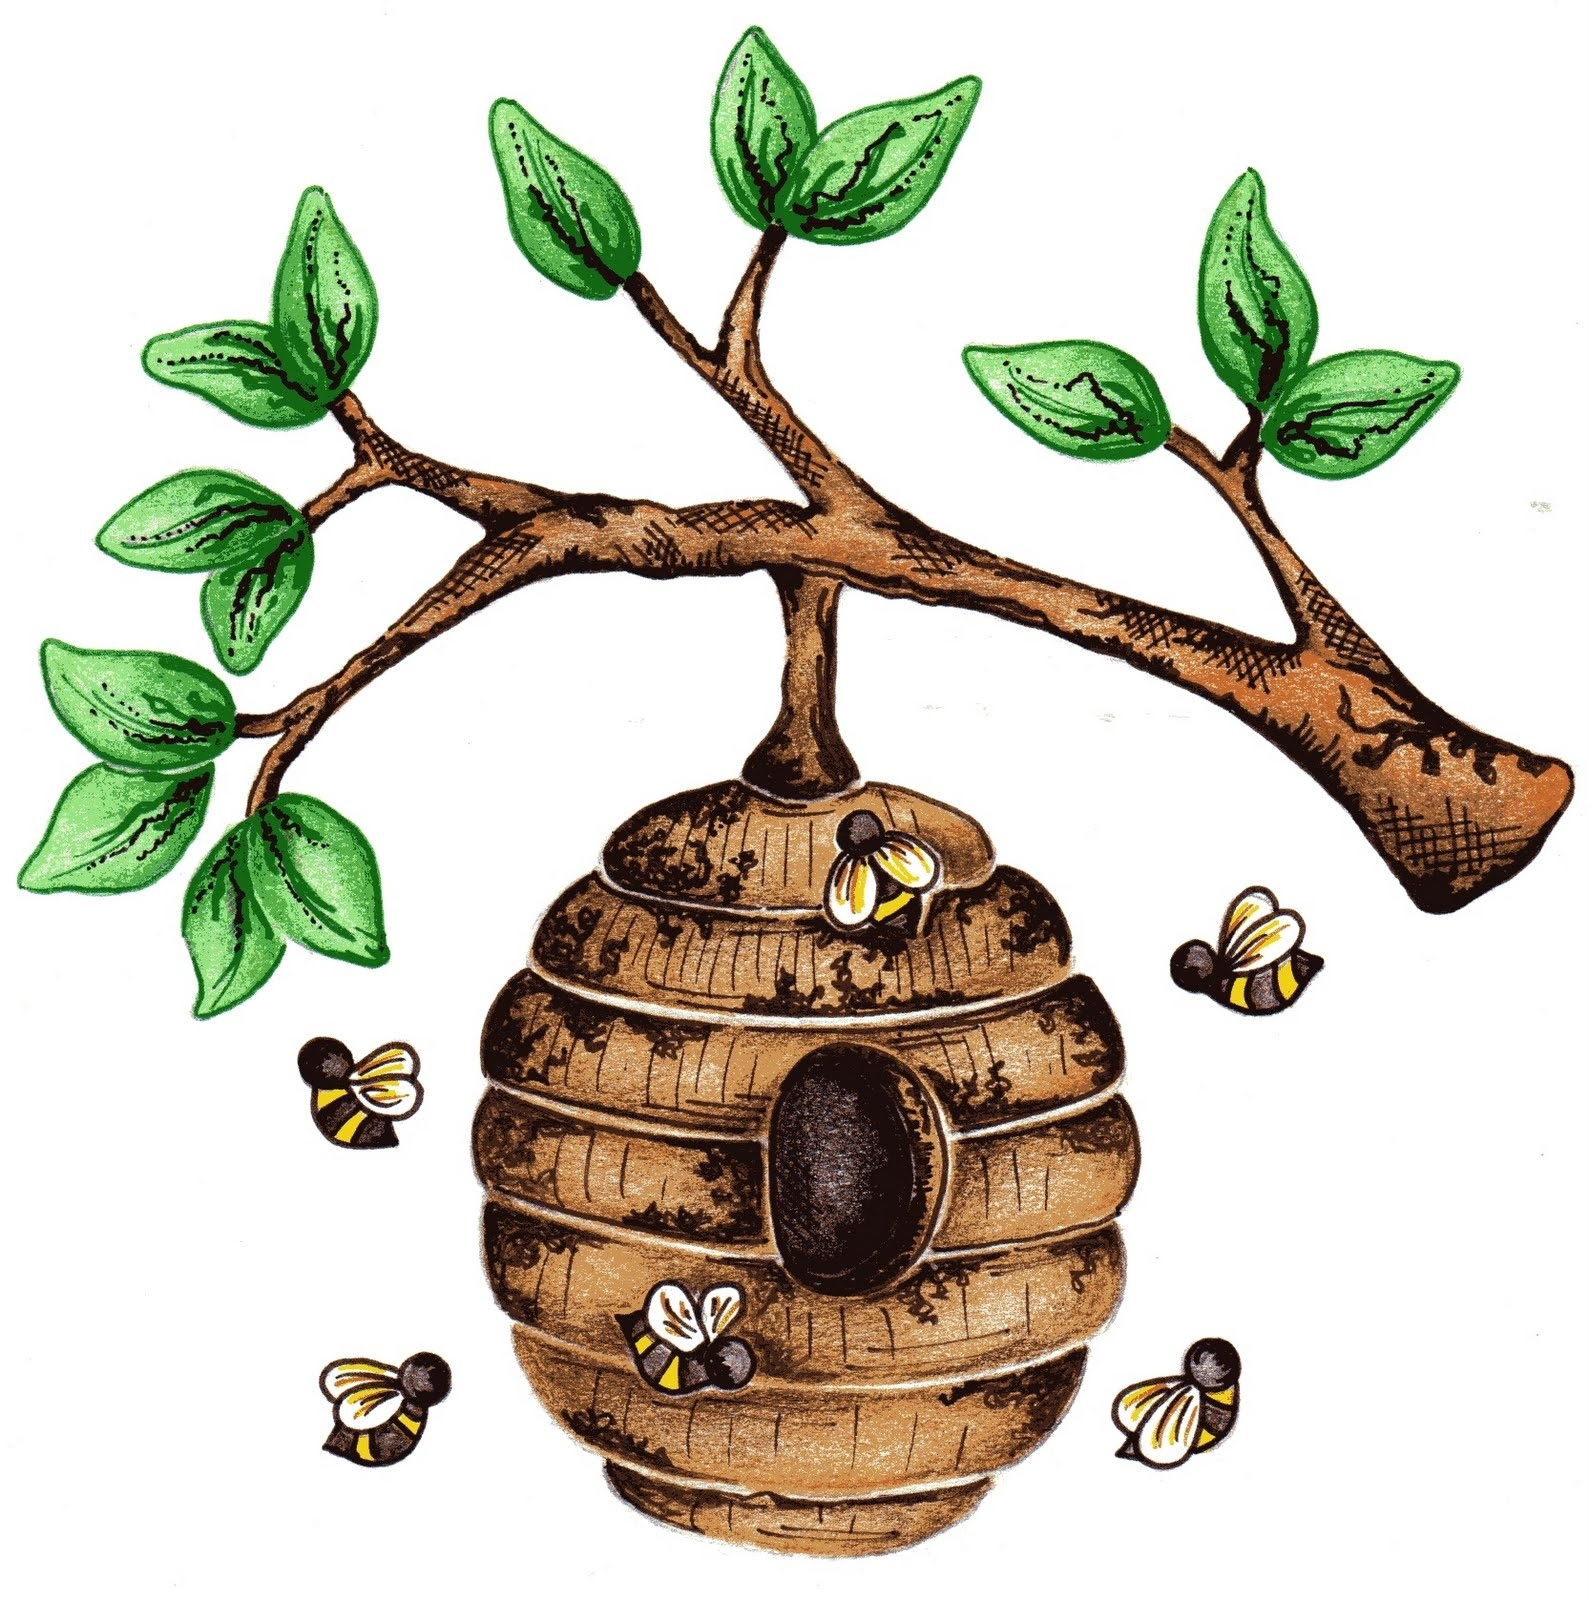 Honeycomb clipart tree drawing. Beehive cilpart sensational ideas